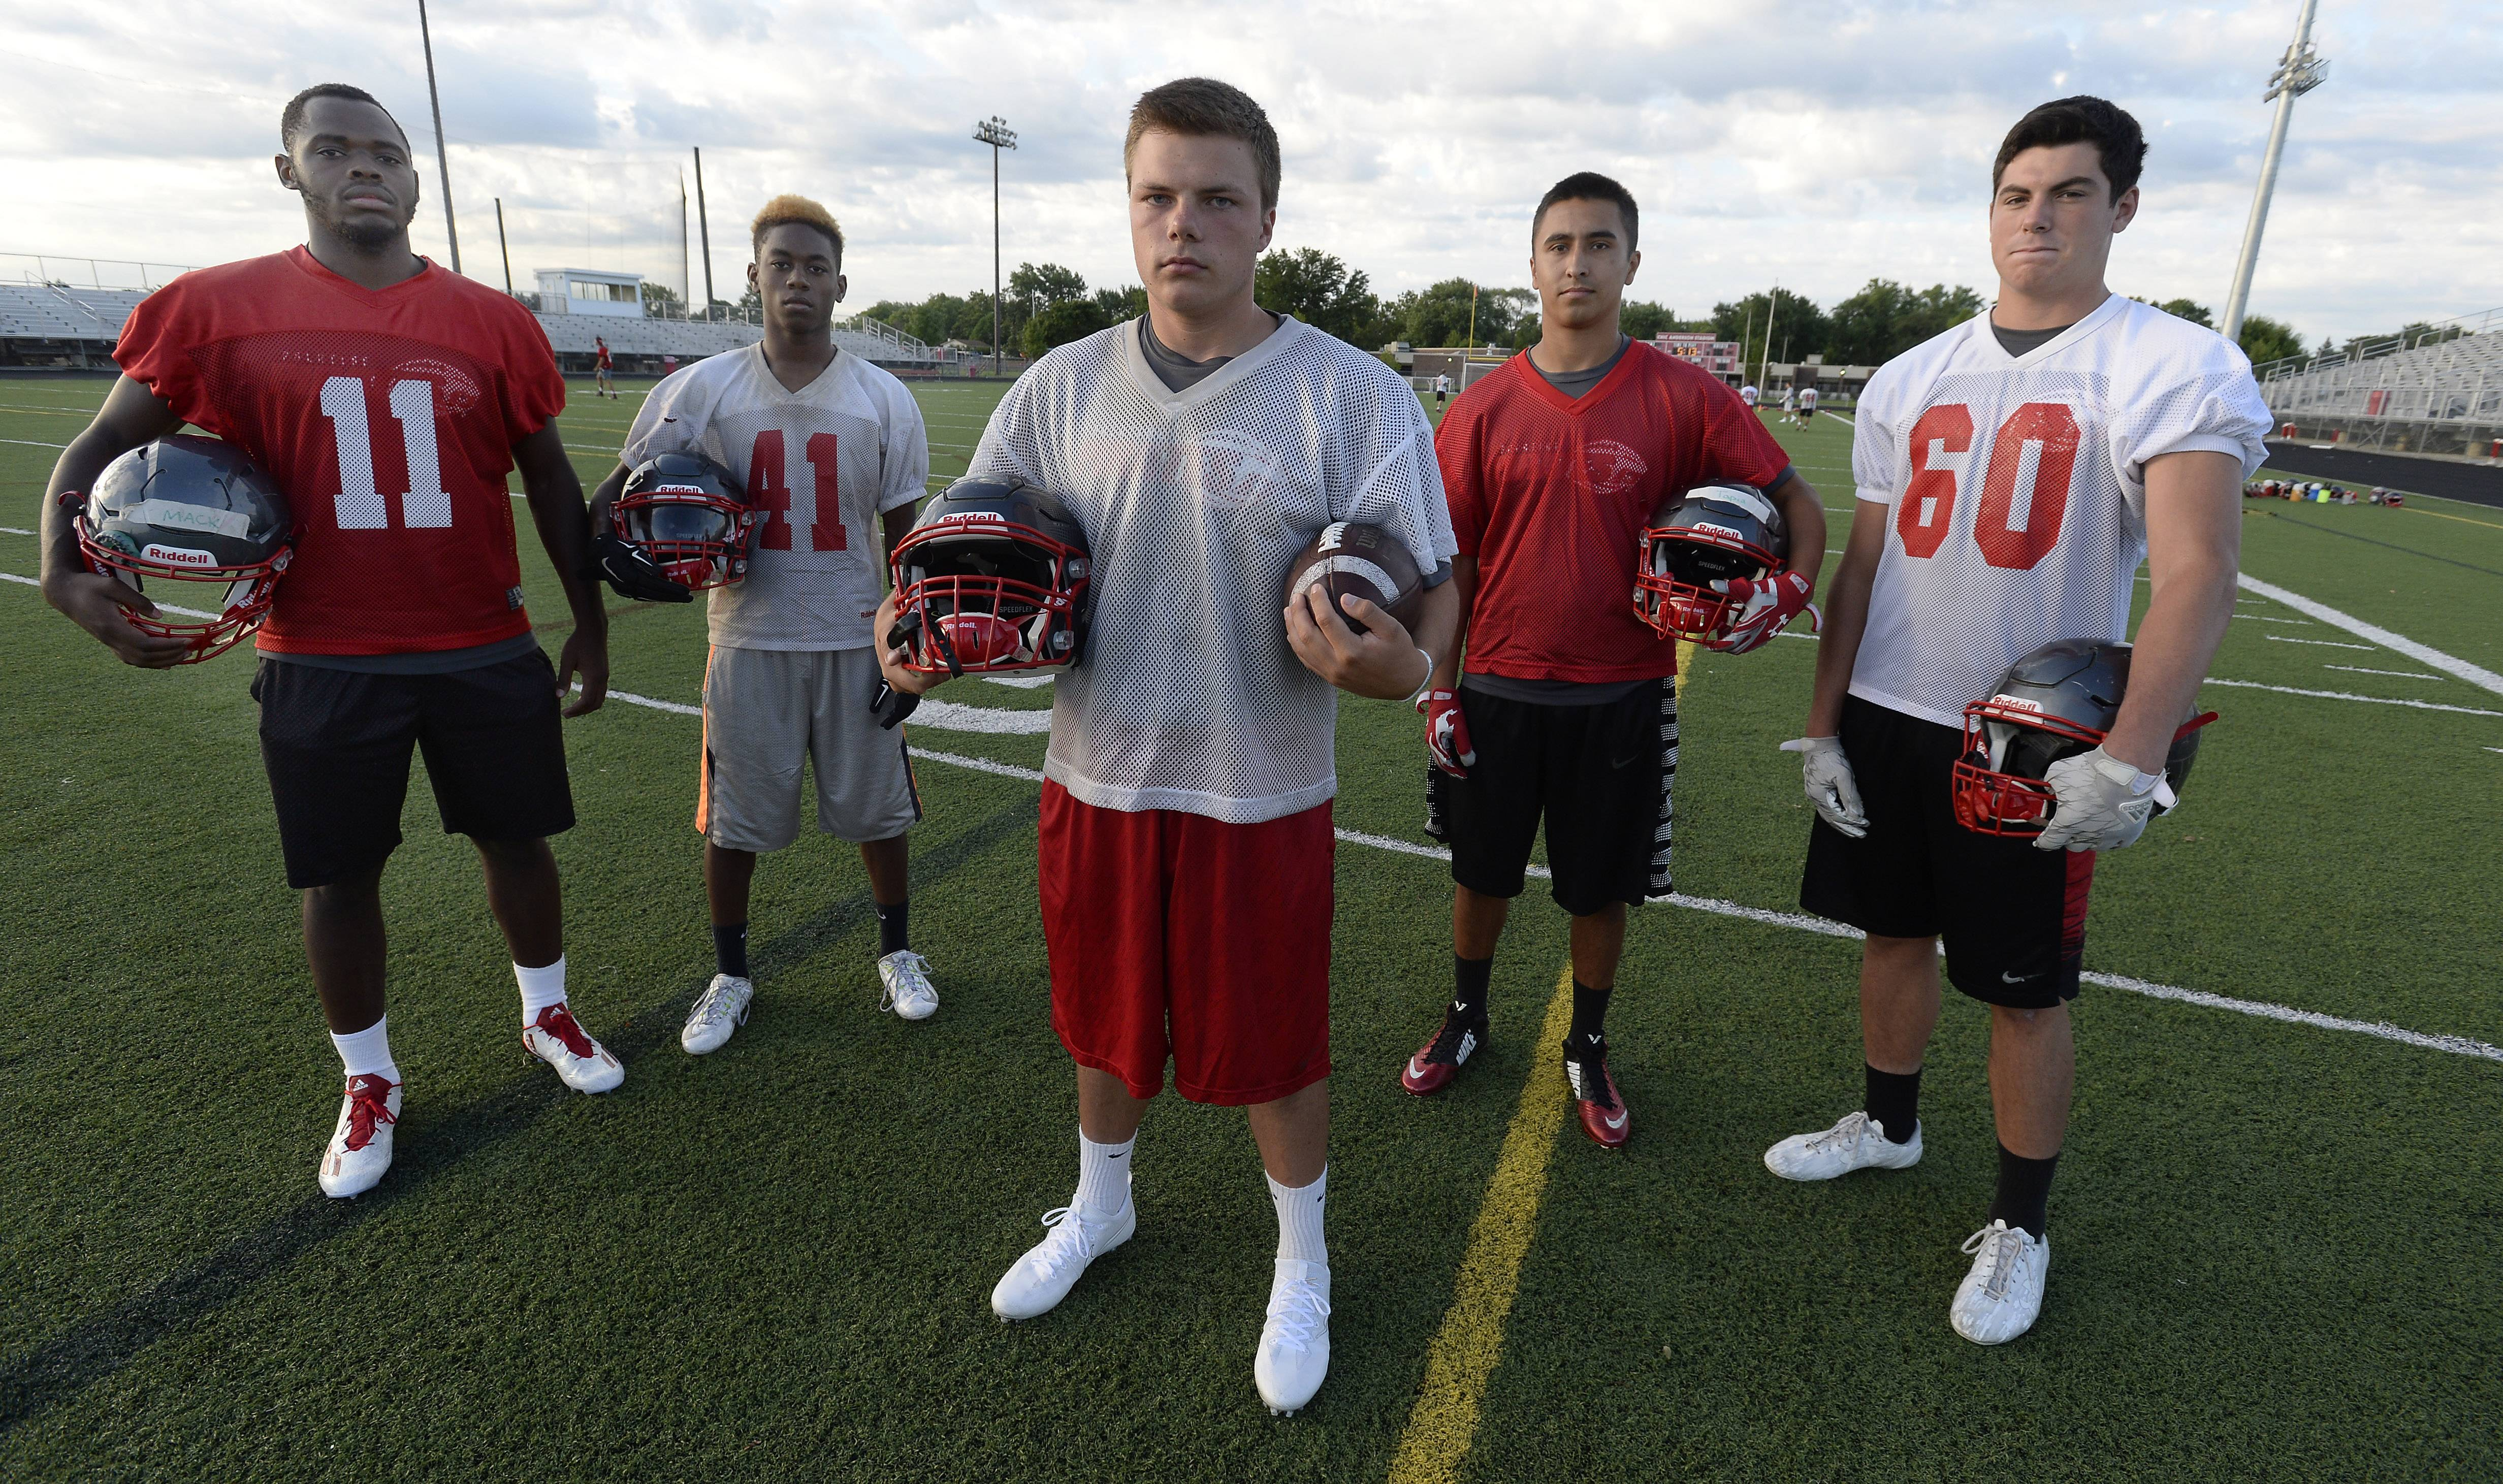 Among the reasons Palatine's football team has high hopes are returning talents, from left, Zach Oles, Mackenzie Balanganayi, Courtland Cornelius, Dylan Tapia and Jack Grochowski.